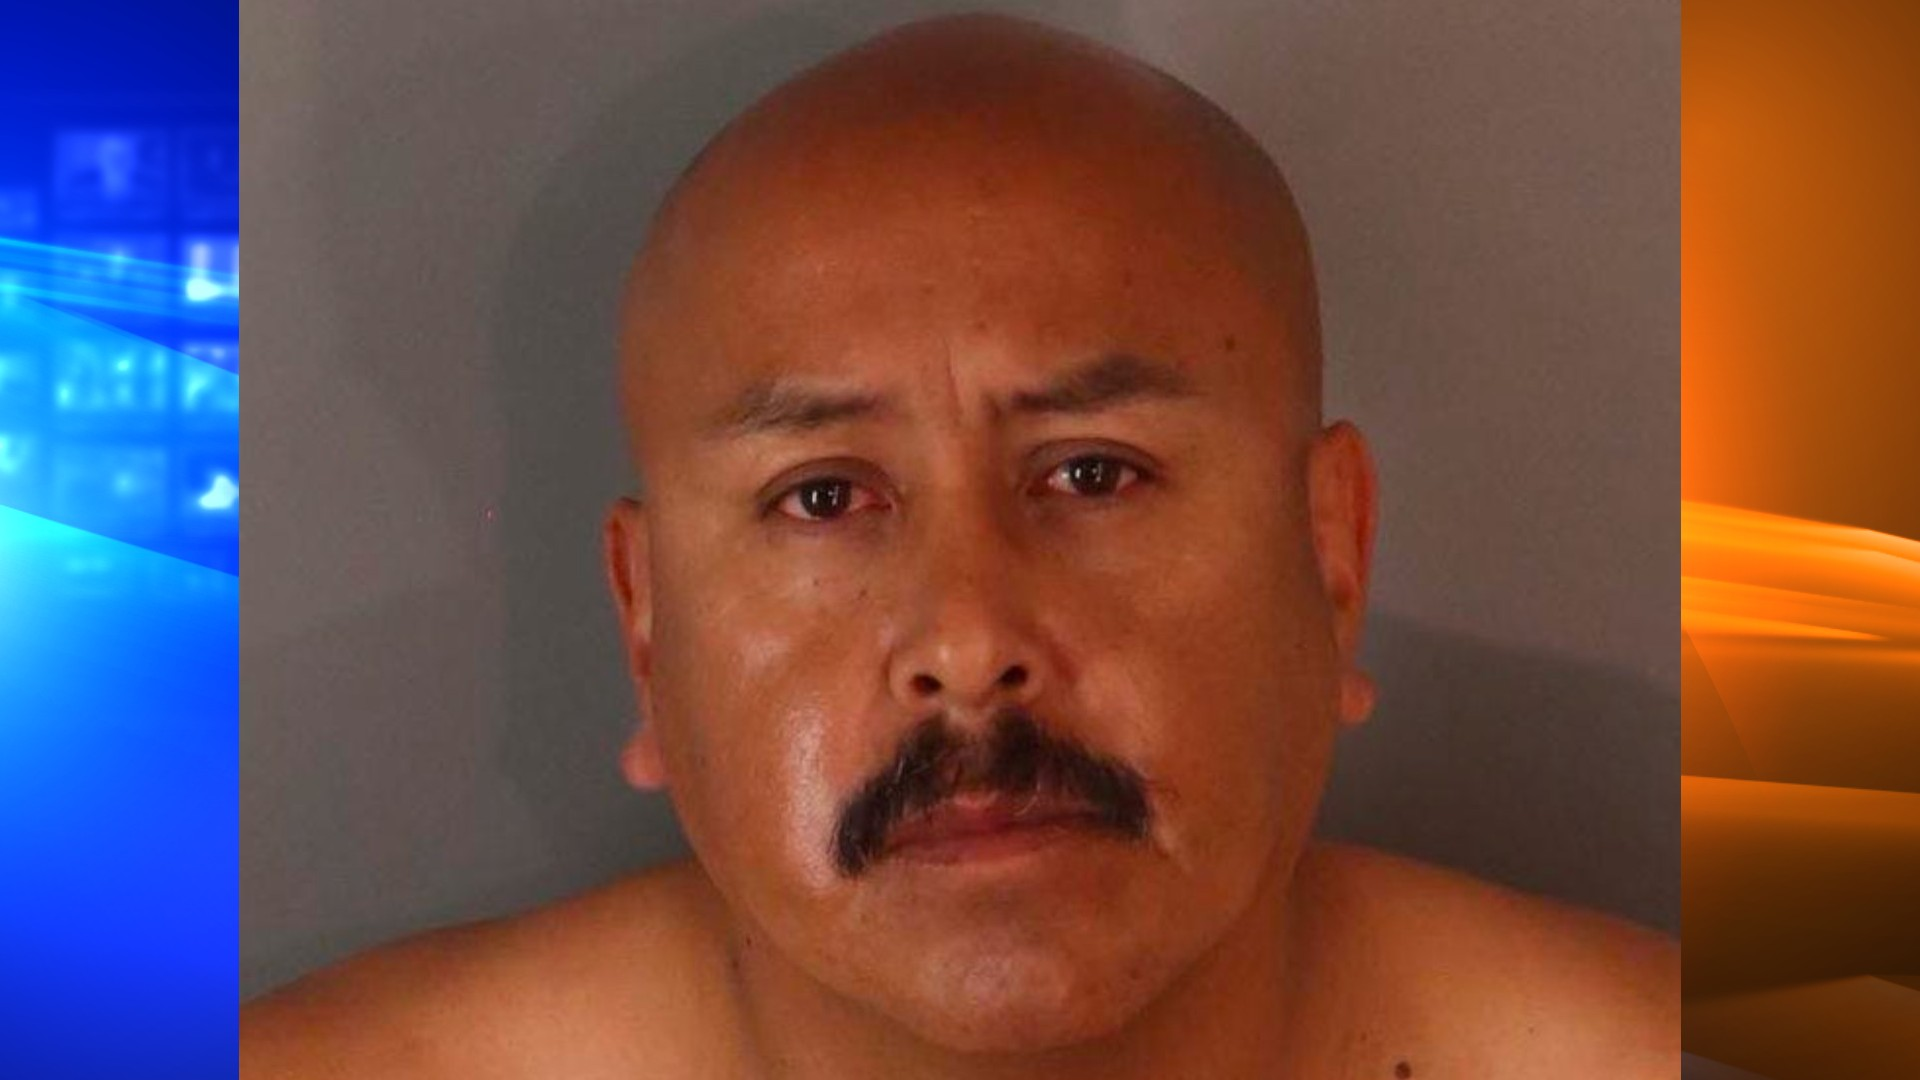 Eliezer Job Mendoza, 45, appears in a photo released by the Riverside Police Department on April 23, 2021.